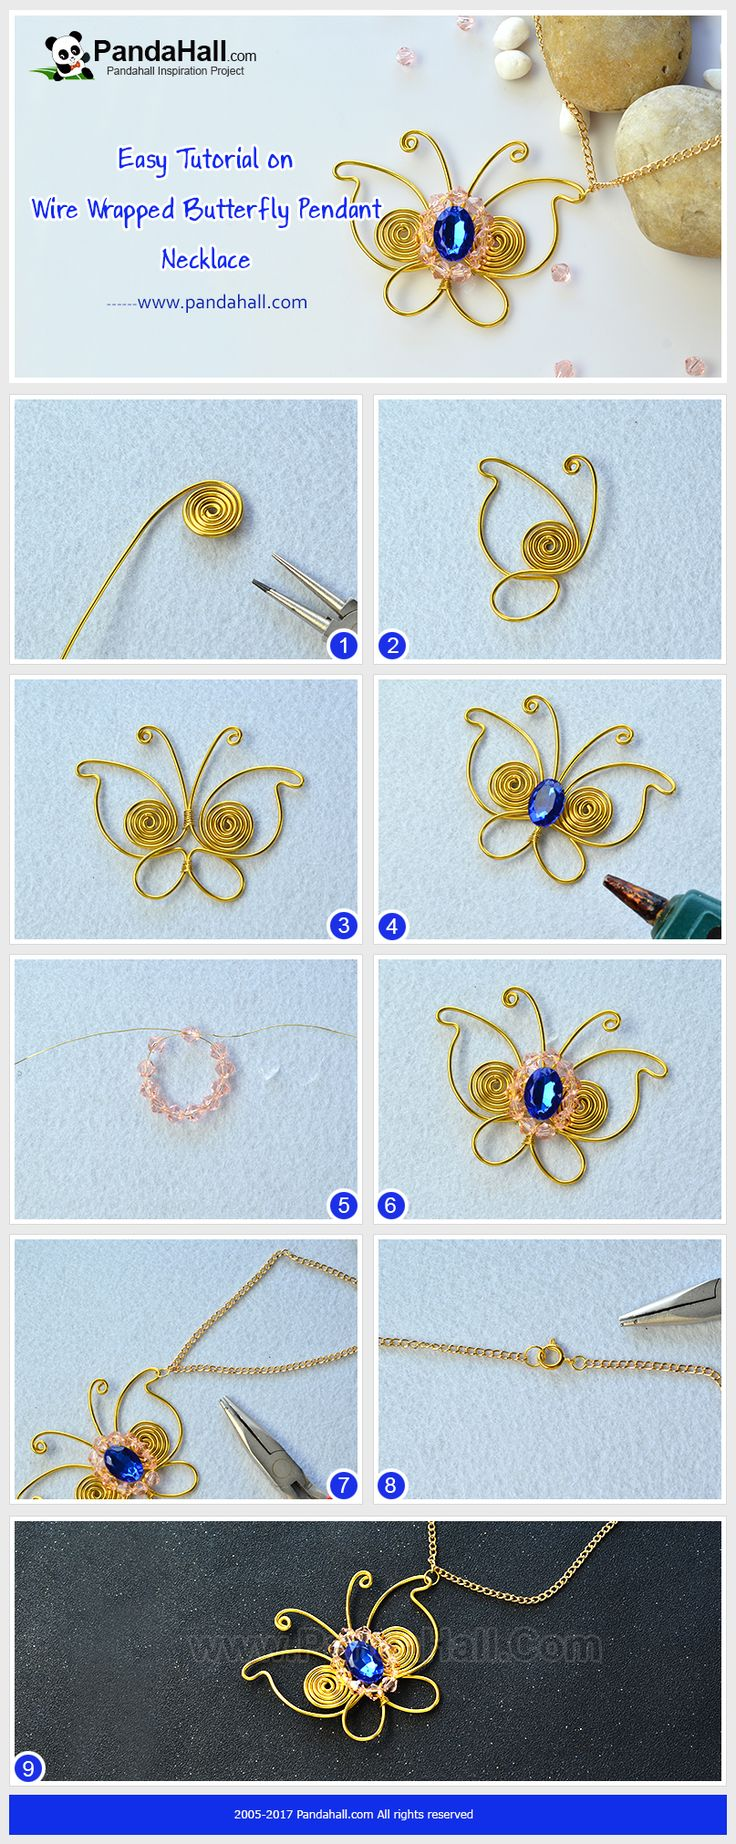 How to Make Wire Wrapped Butterfly Pendant Necklace Wrap the wires onto a butterfly shape, decorate it with a rhinestone cabochon and some glass beads, and then connect it to a necklace chain, and you will get a delicate pendant necklace!